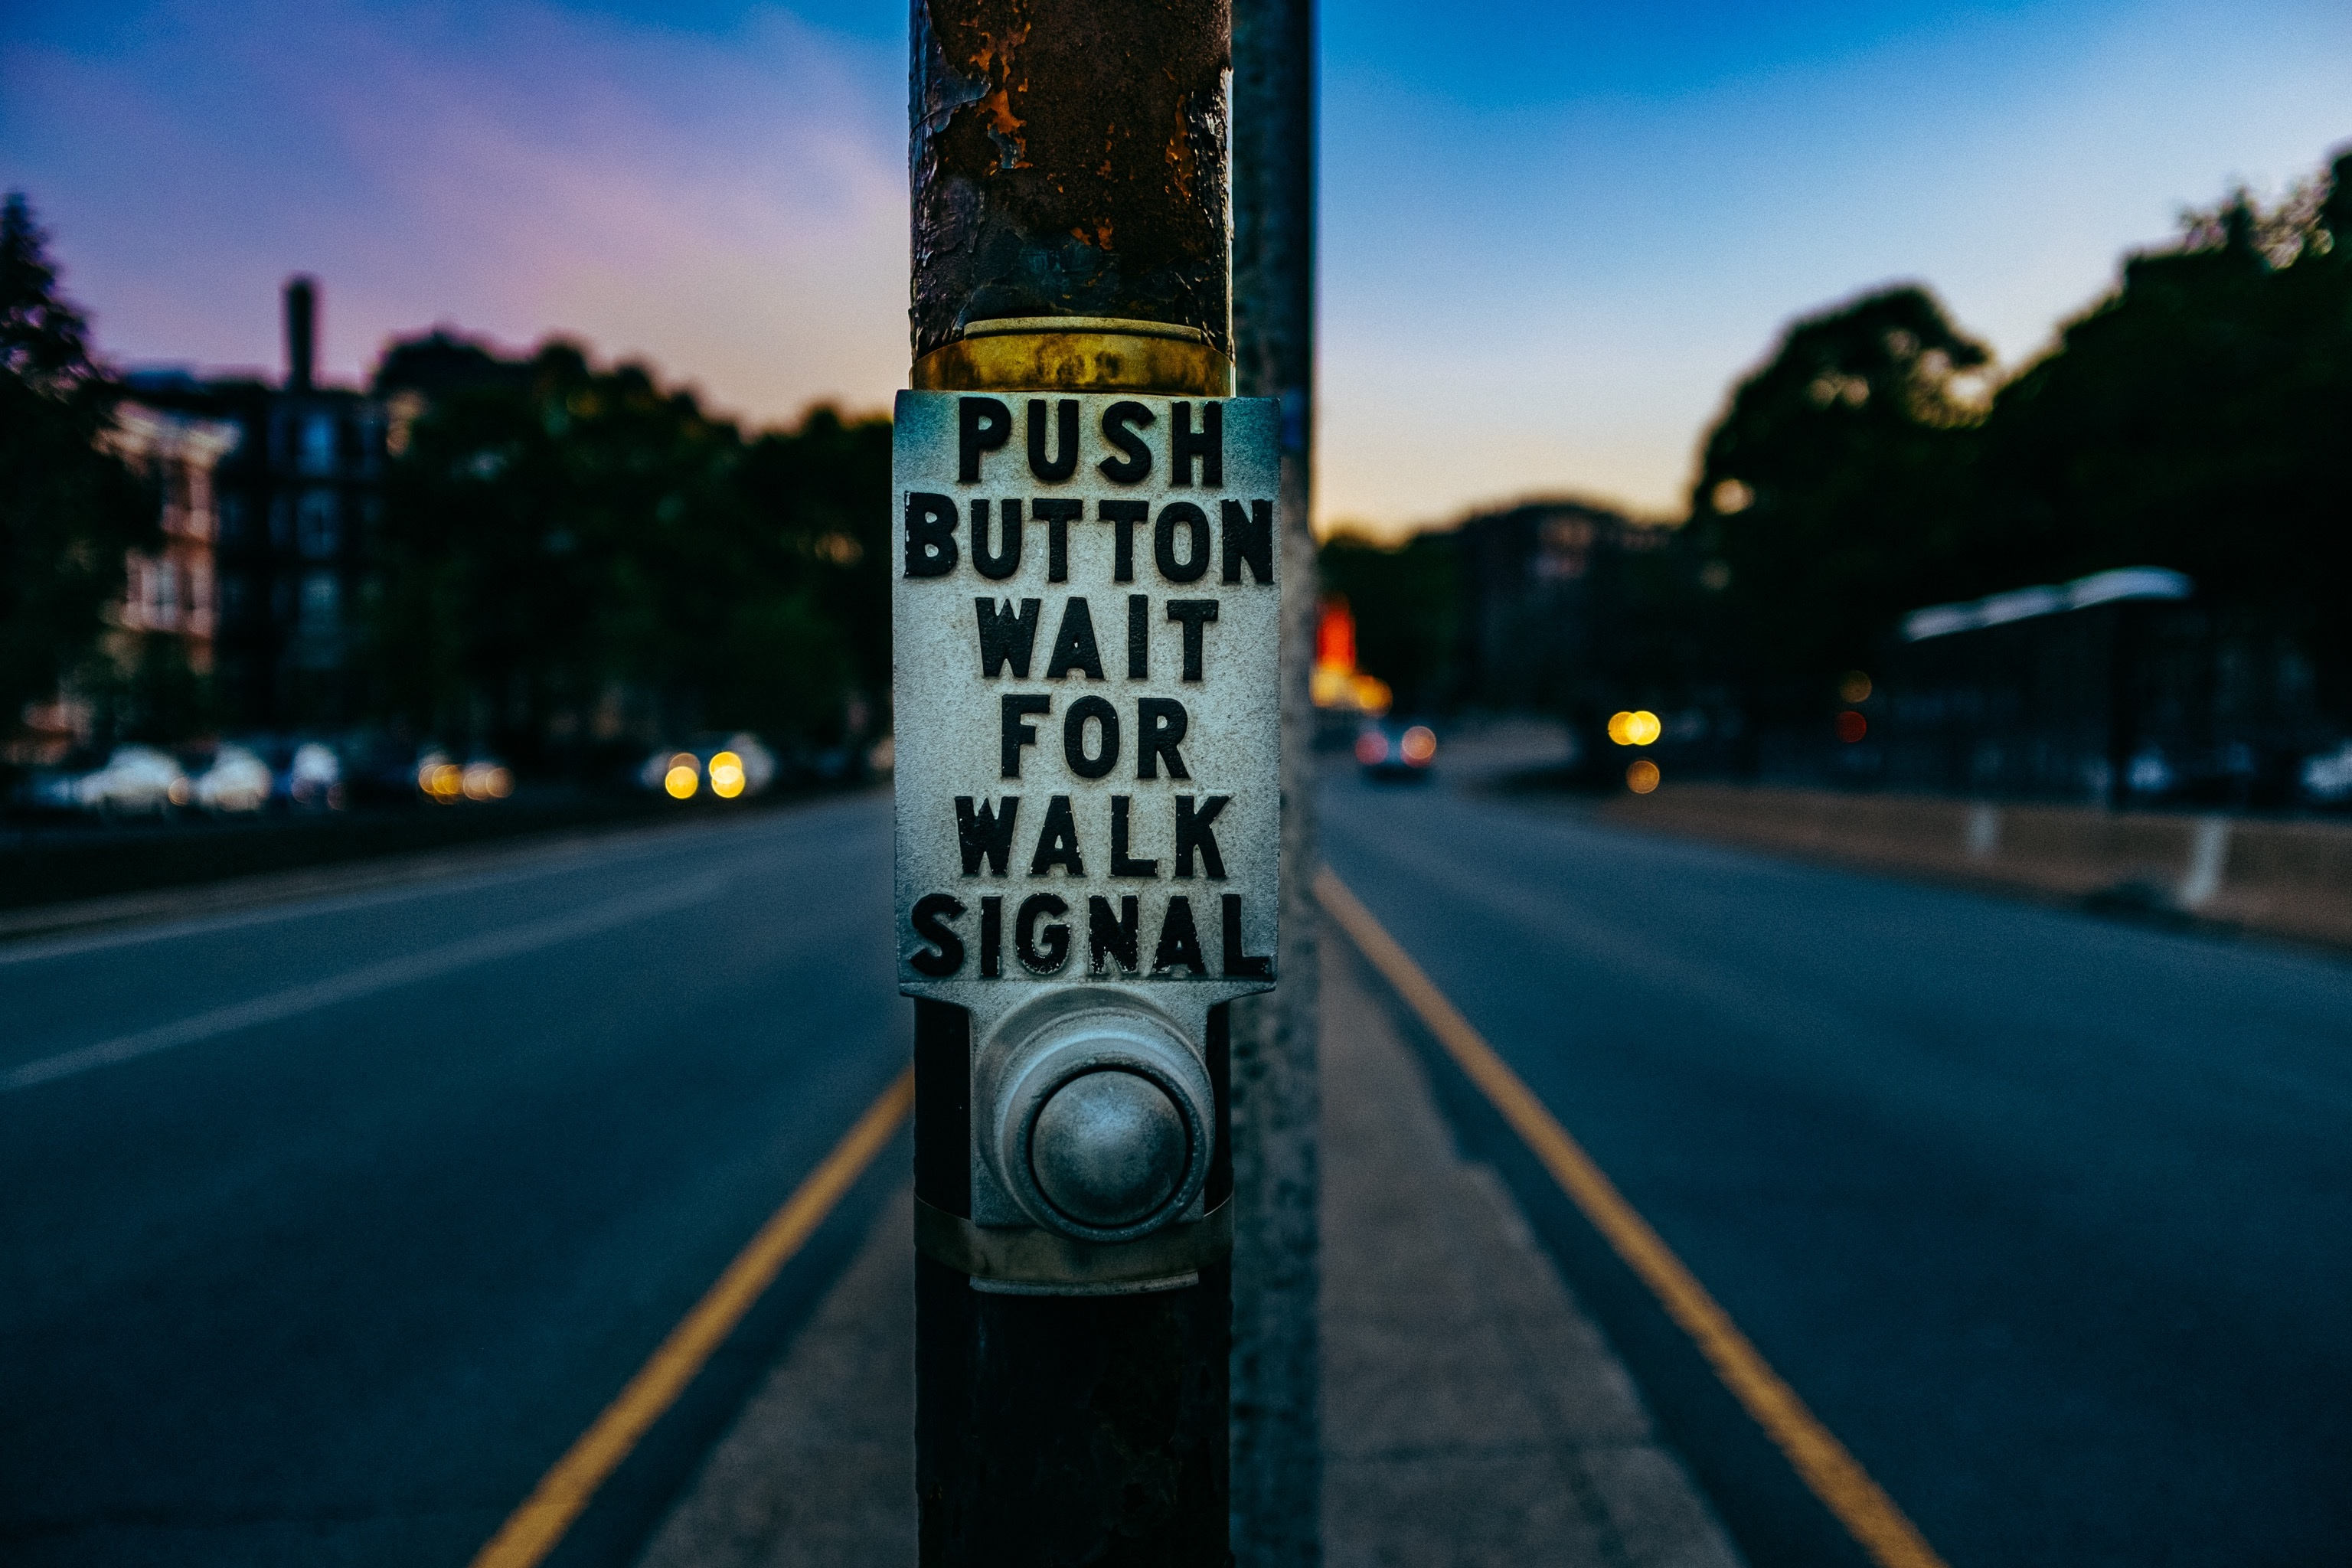 The lowly crosswalk button.